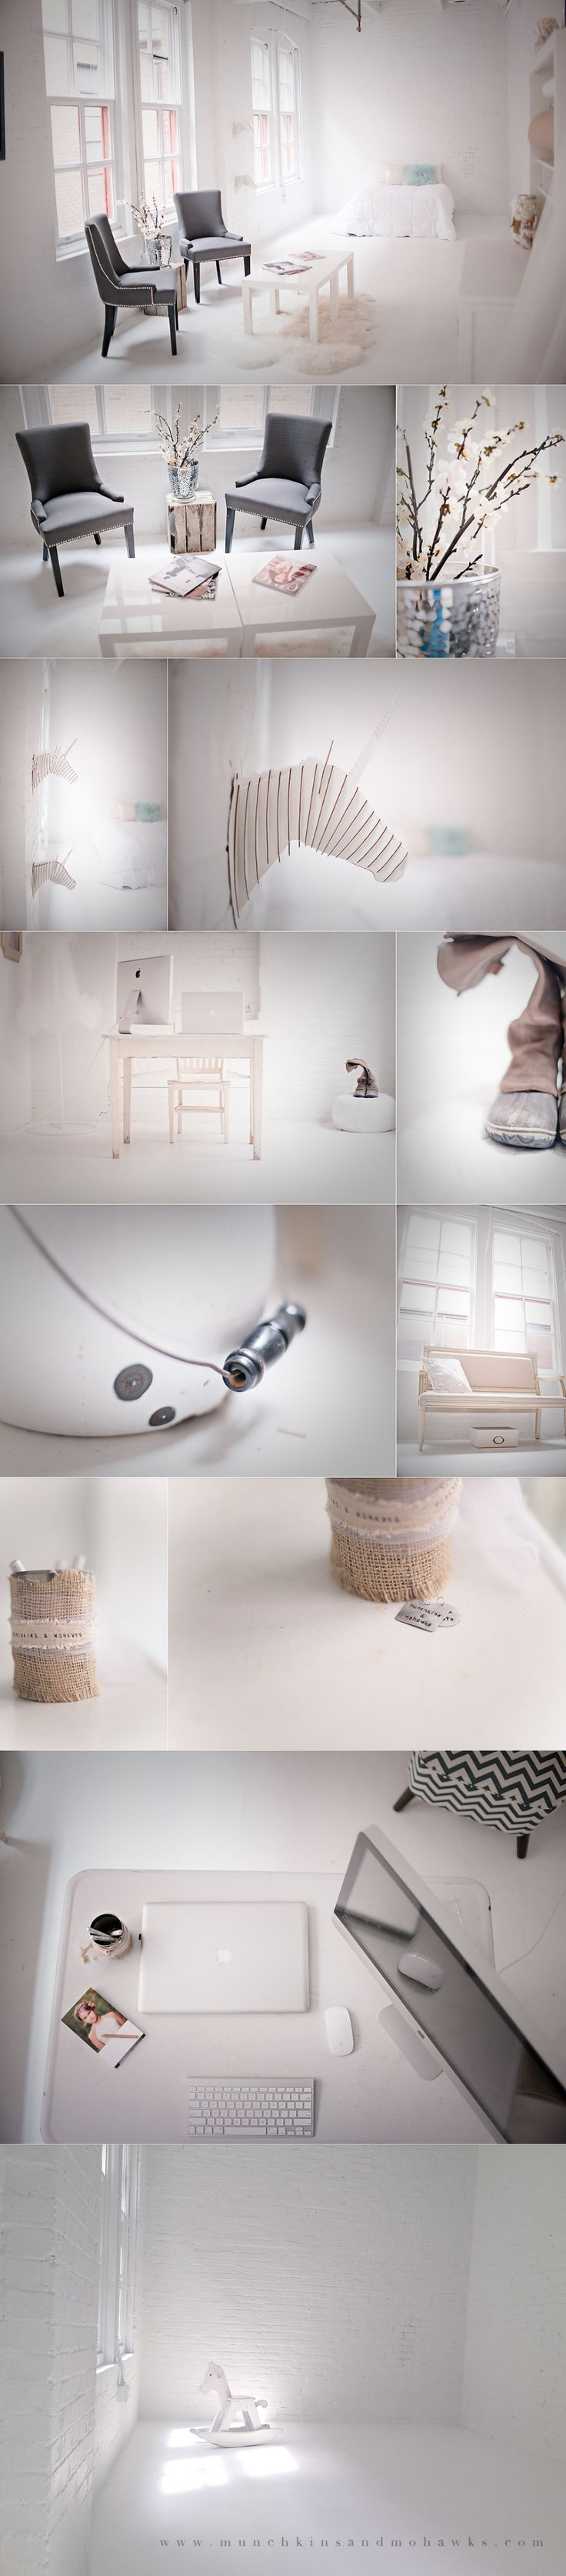 love this for a photography studio/workspace. all white with muted tones for decor, allowing the subject to shine!...a girl can dream right